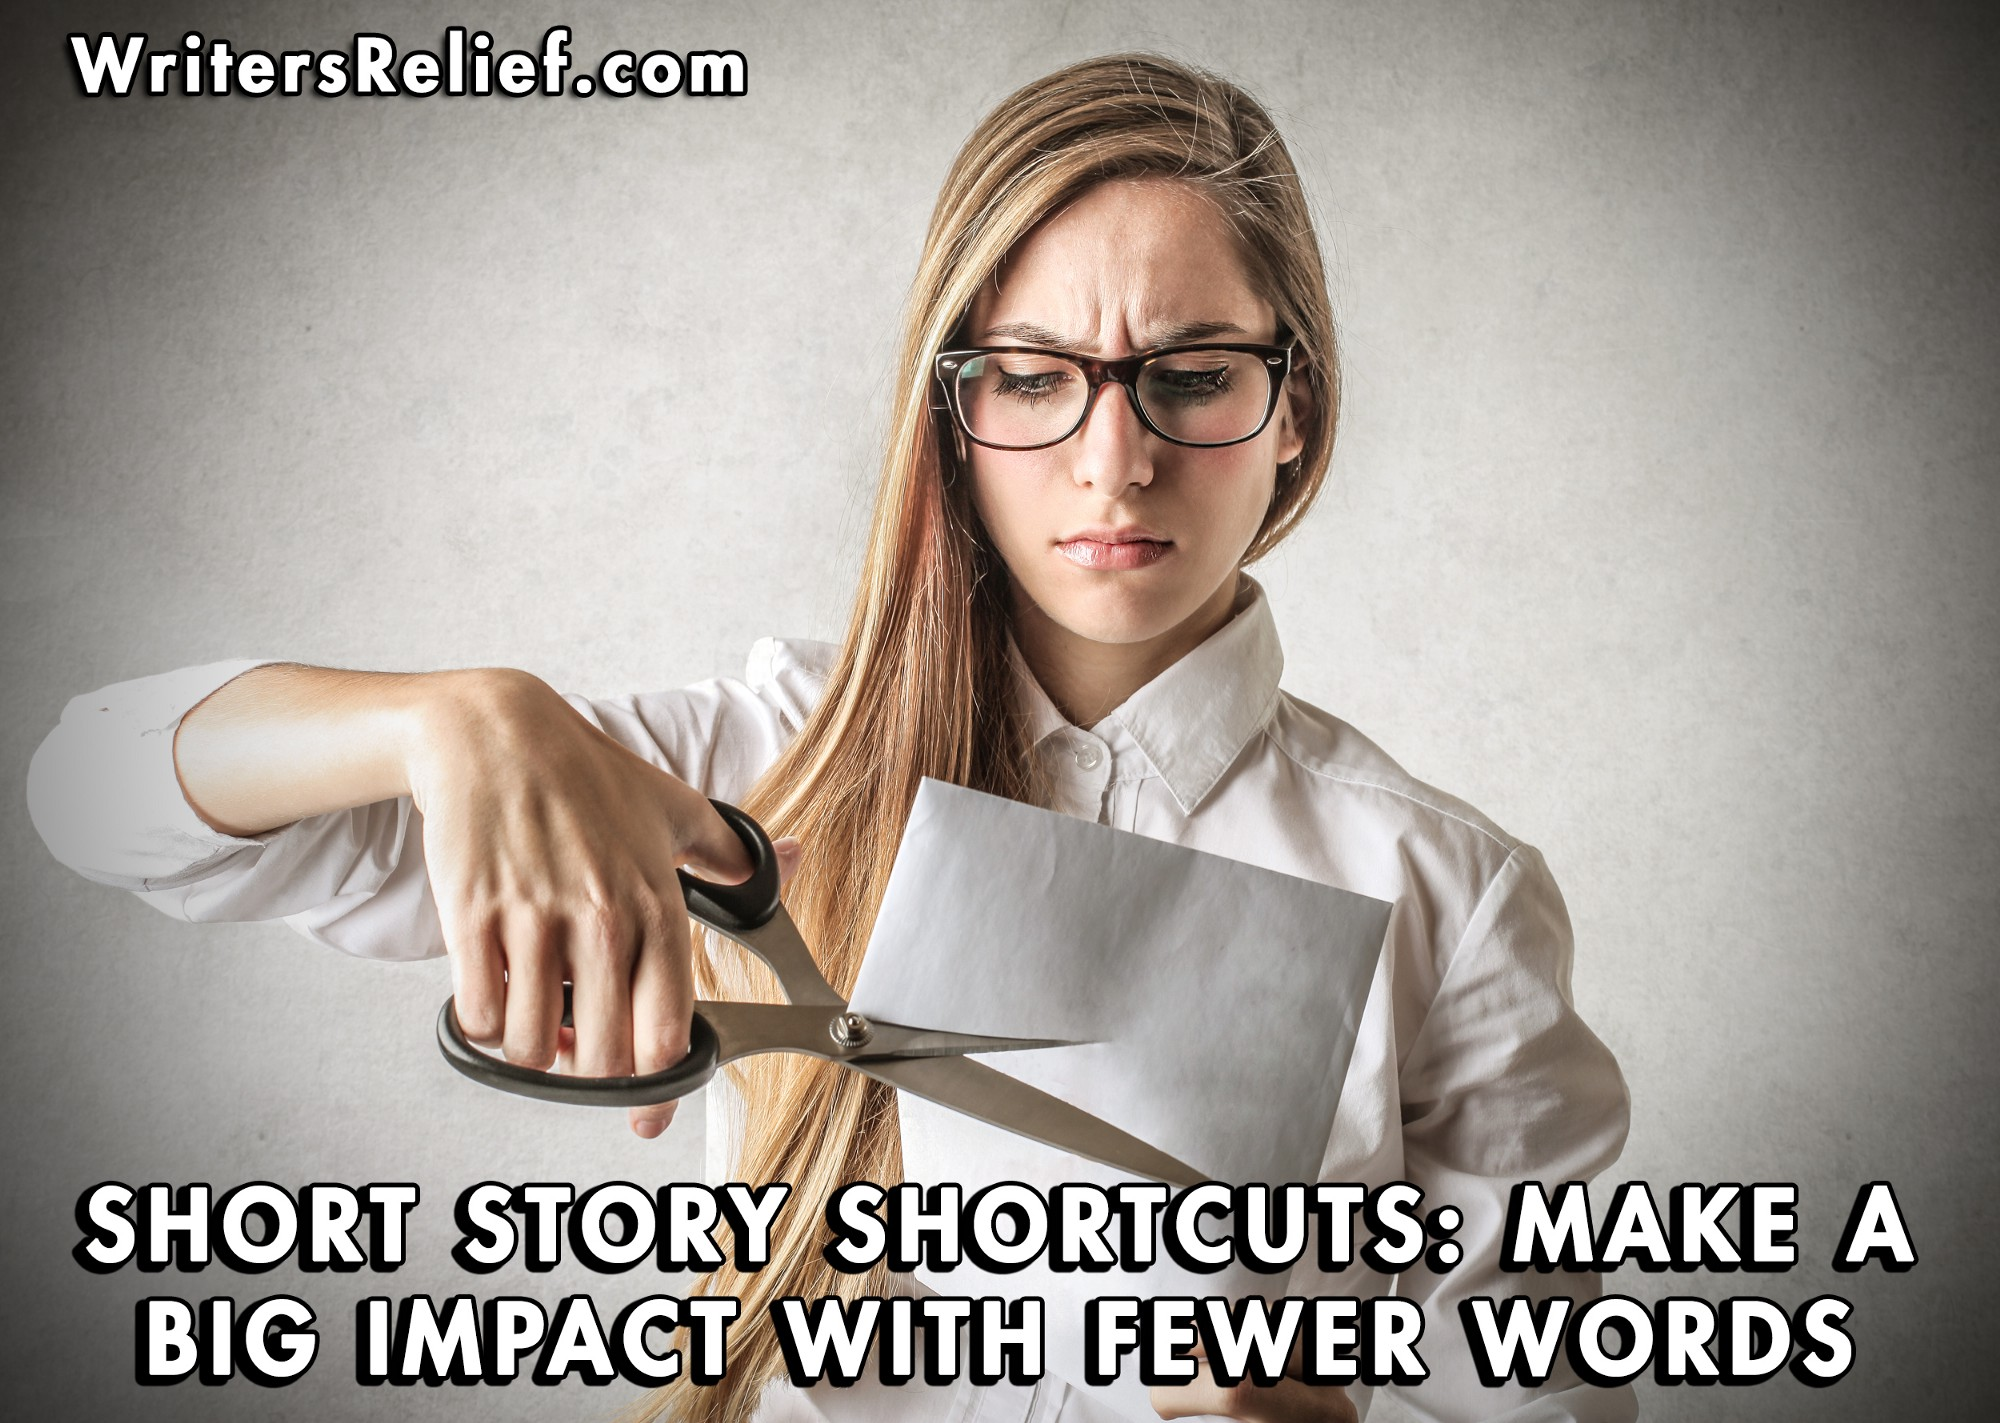 Short Story Shortcuts: Make A Big Impact With Fewer Words